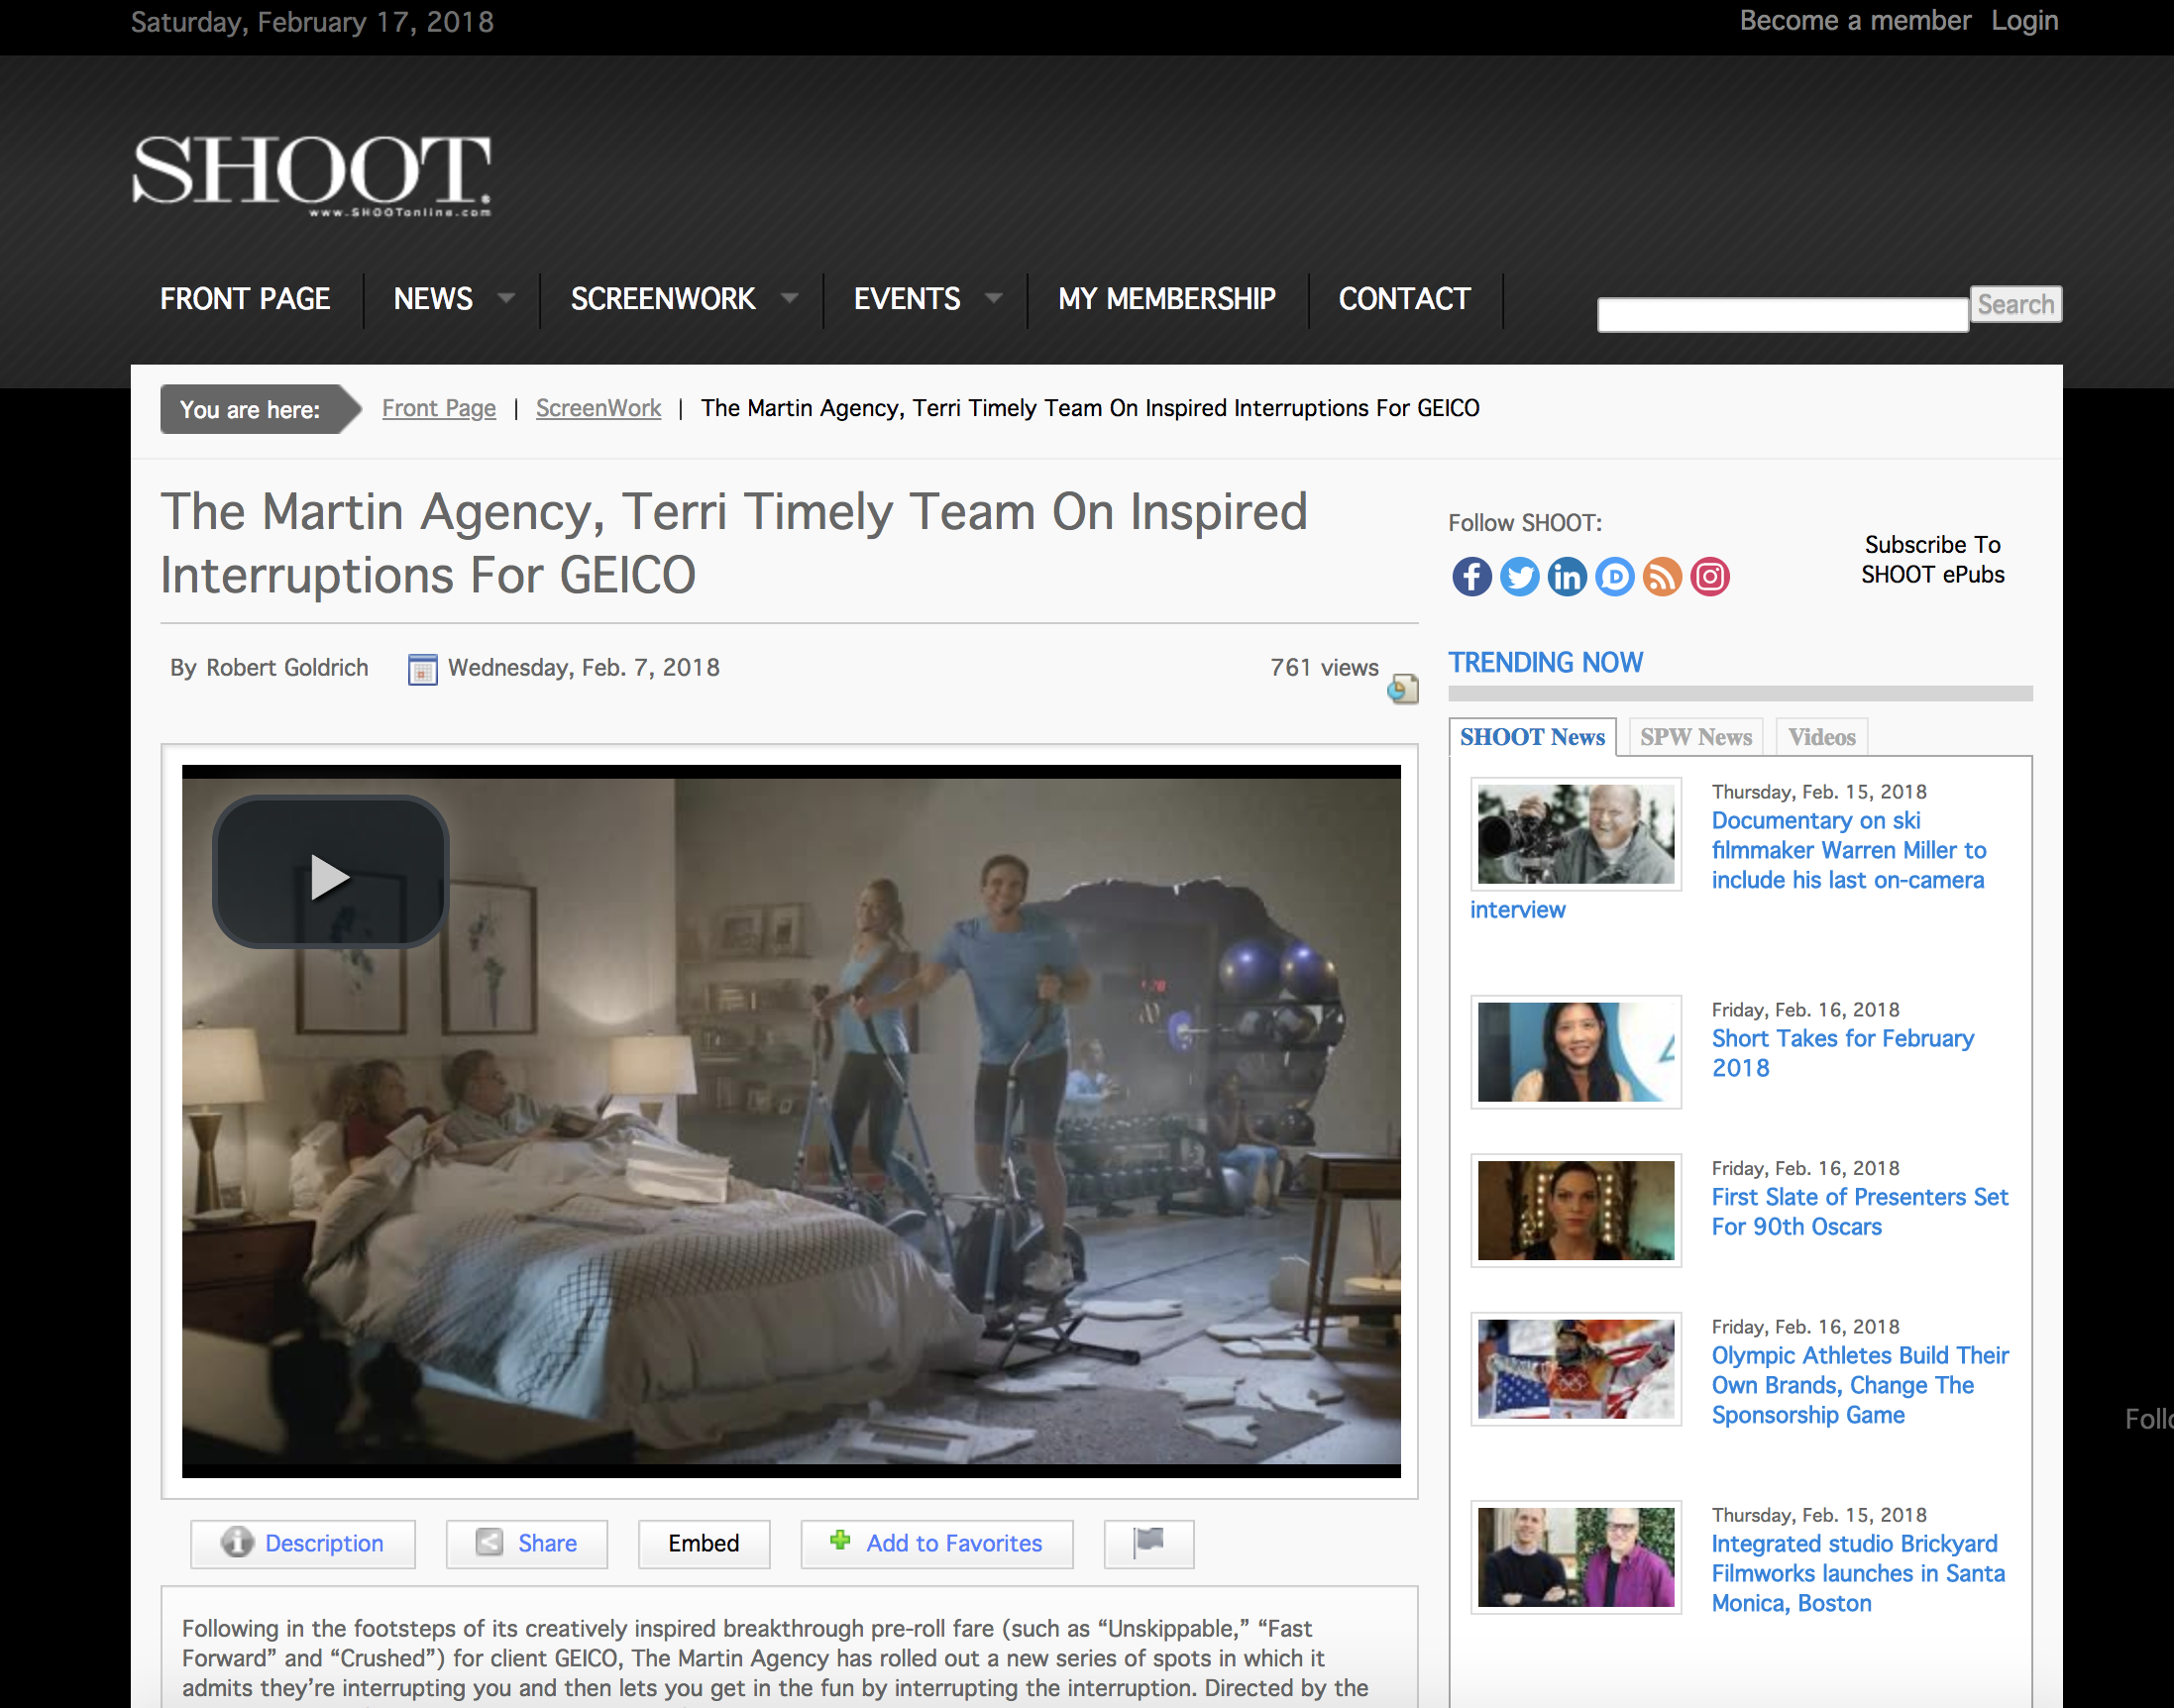 The Martin Agency, Terri Timely on Inspired Interruptions for GEICO